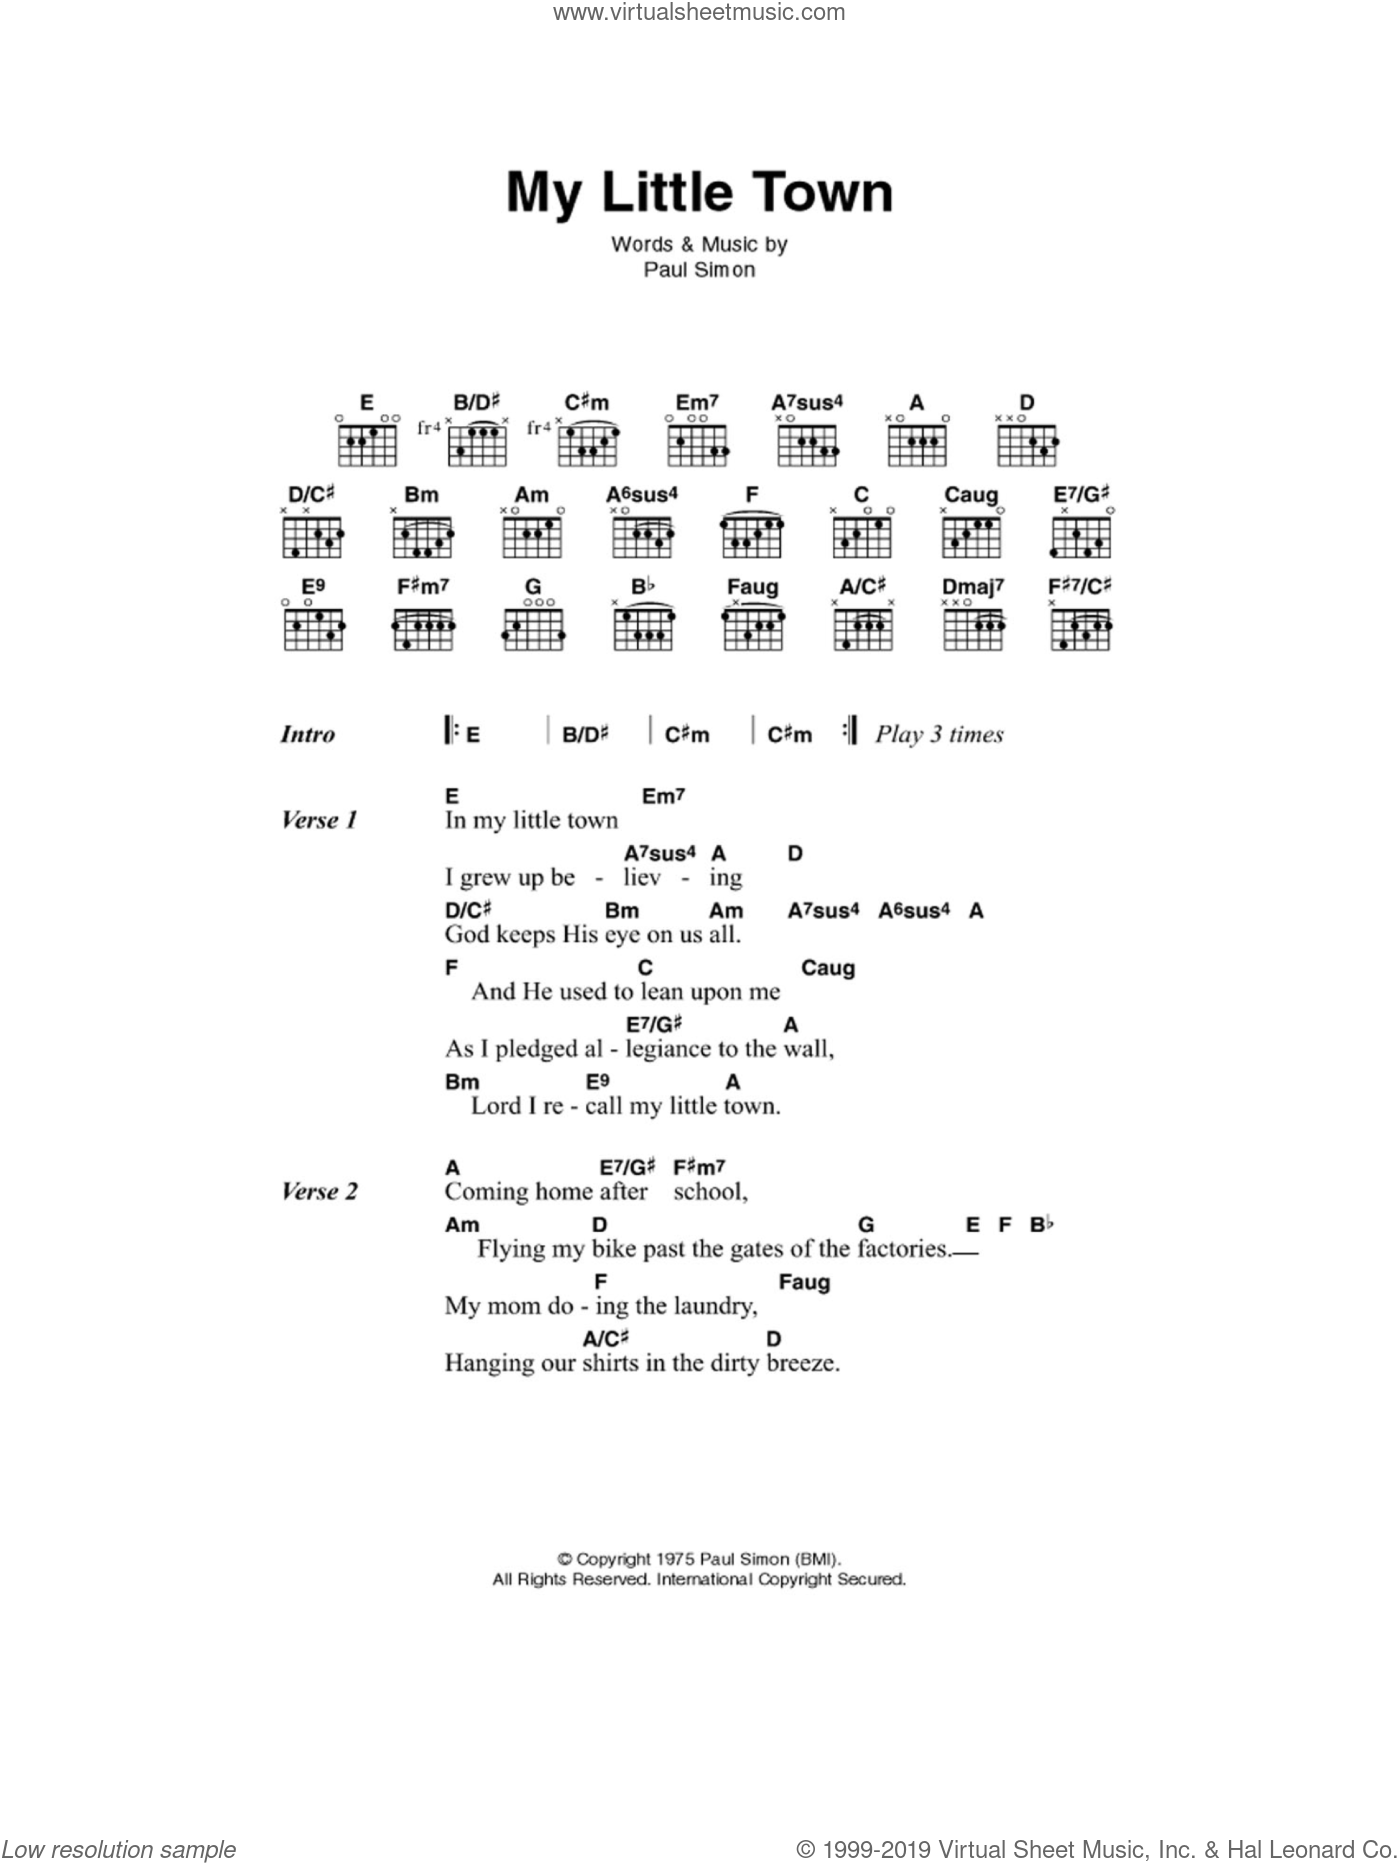 Simon - My Little Town sheet music for guitar (chords) [PDF]